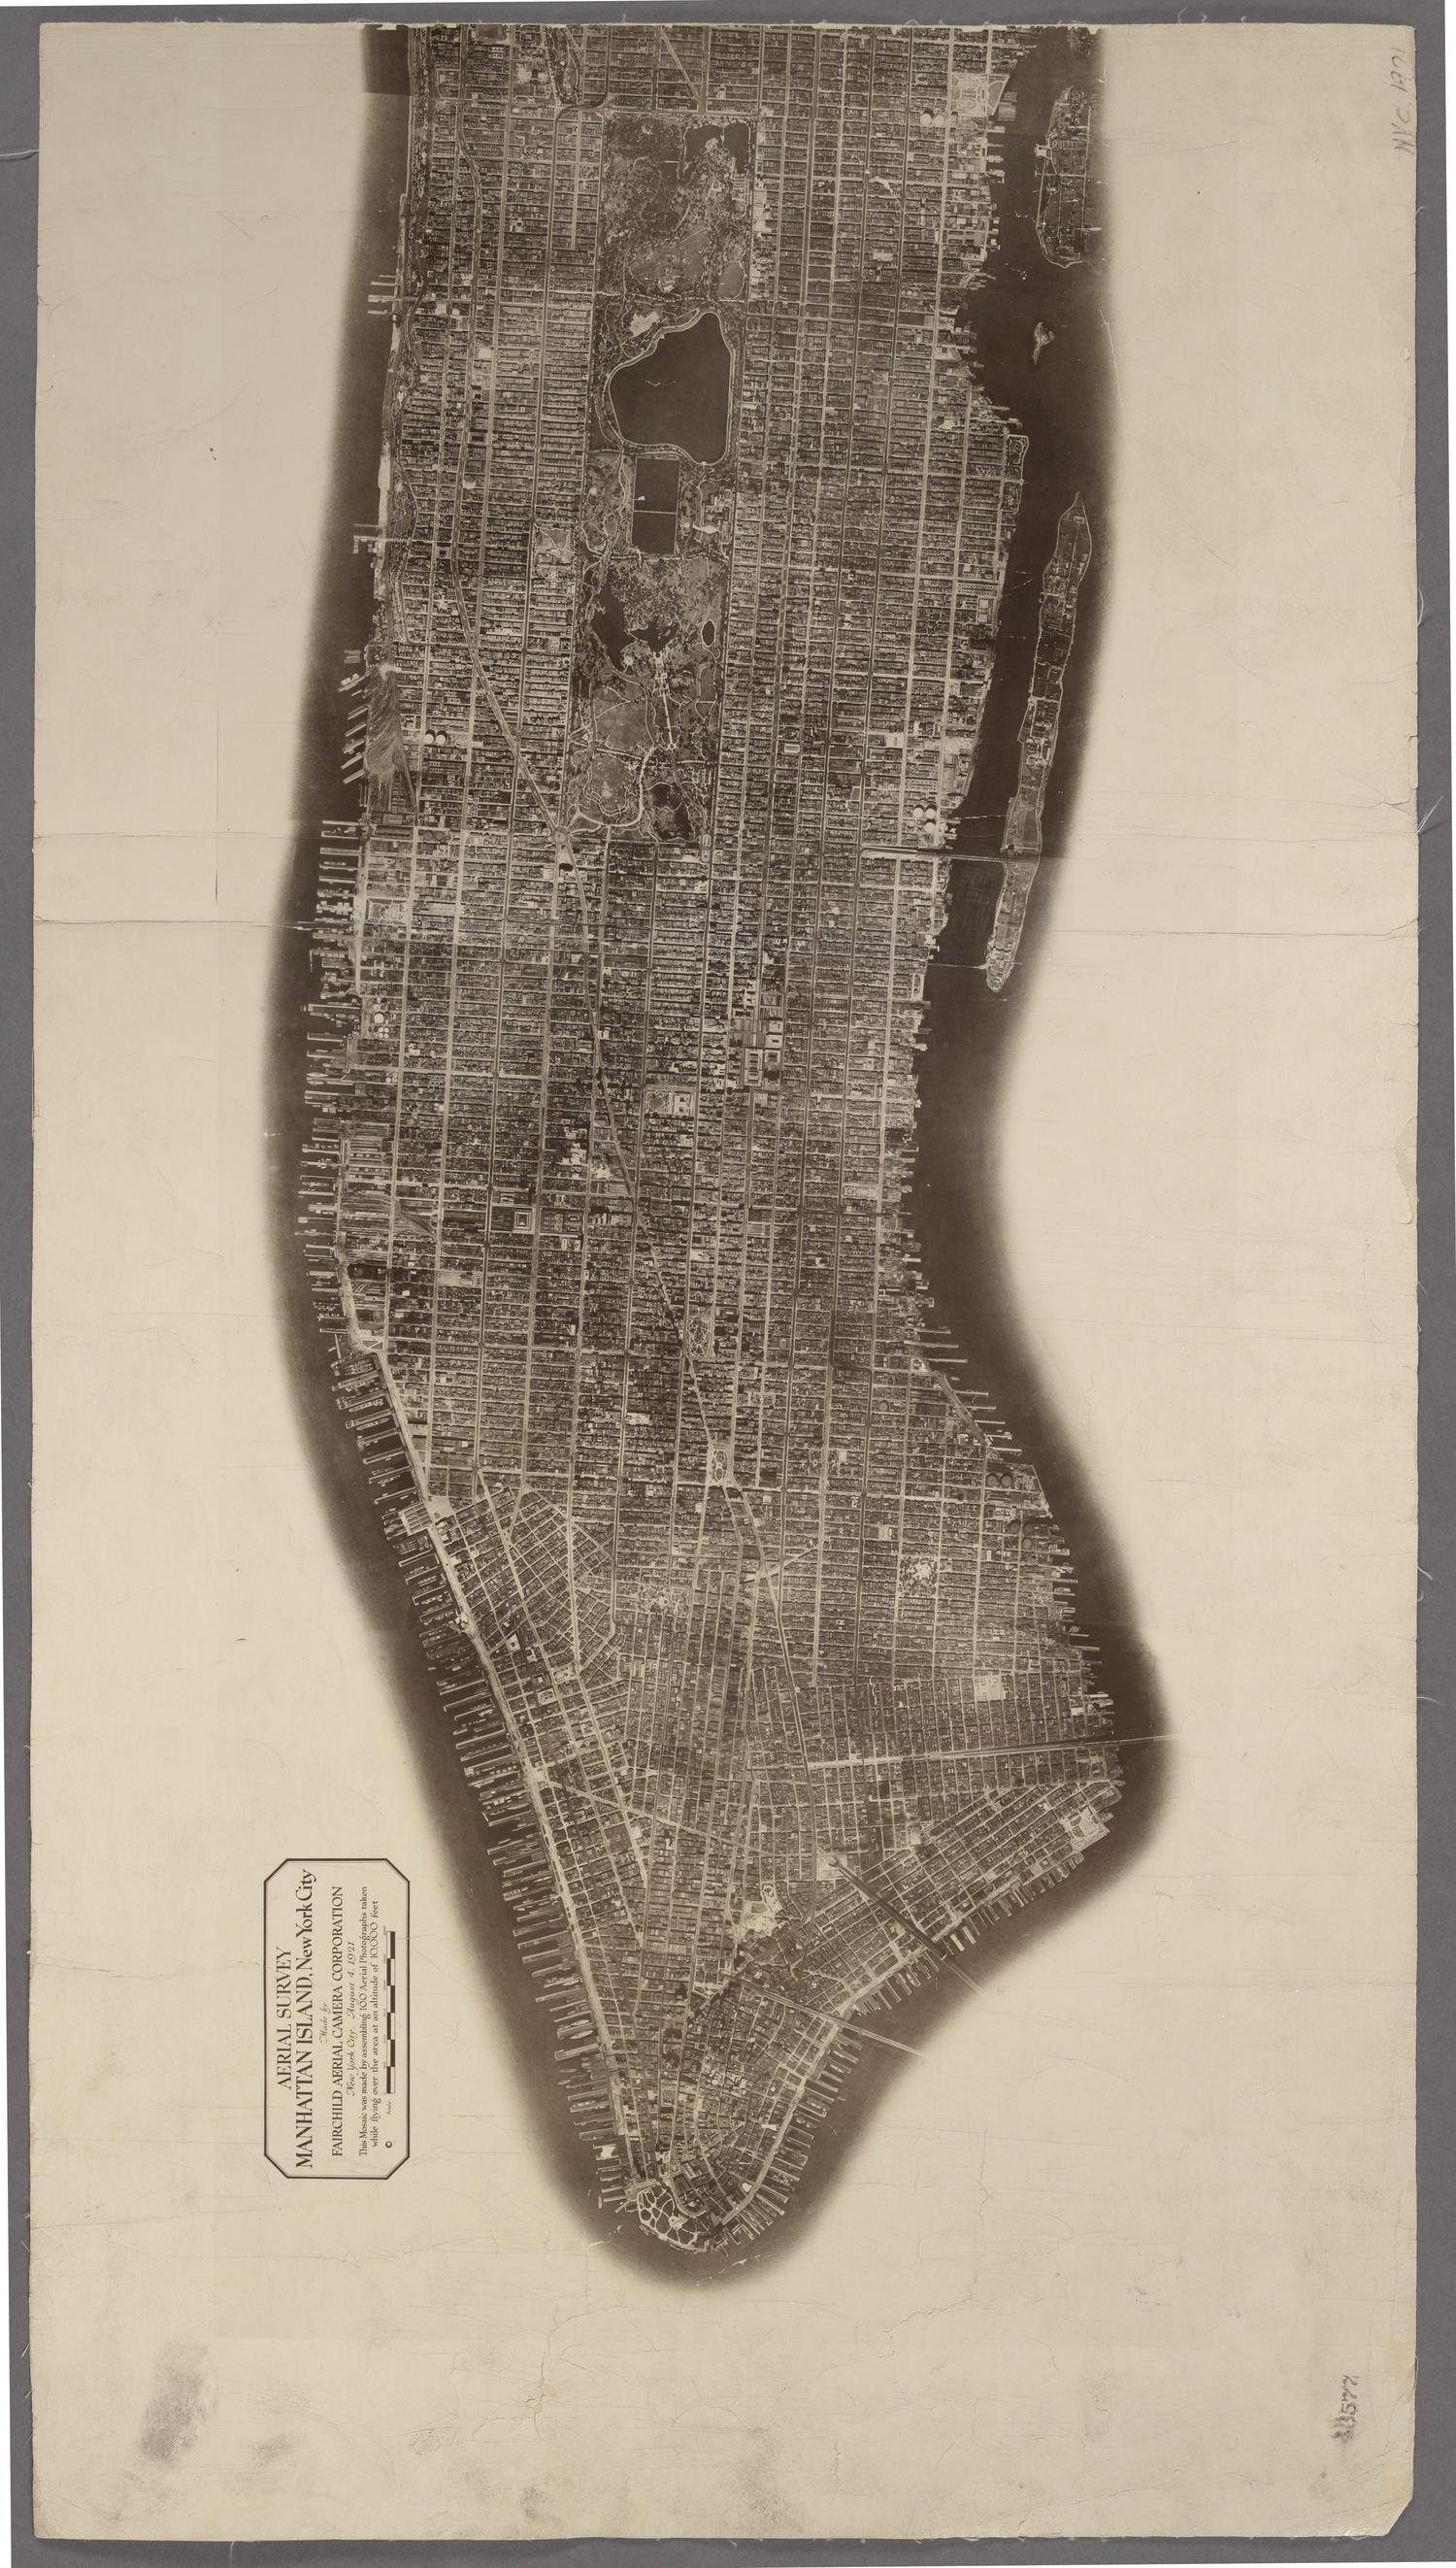 Aerial Survey. Manhattan Island, New York City. Made by Fairchild Aerial Camera Corporation. August 4, 1921.